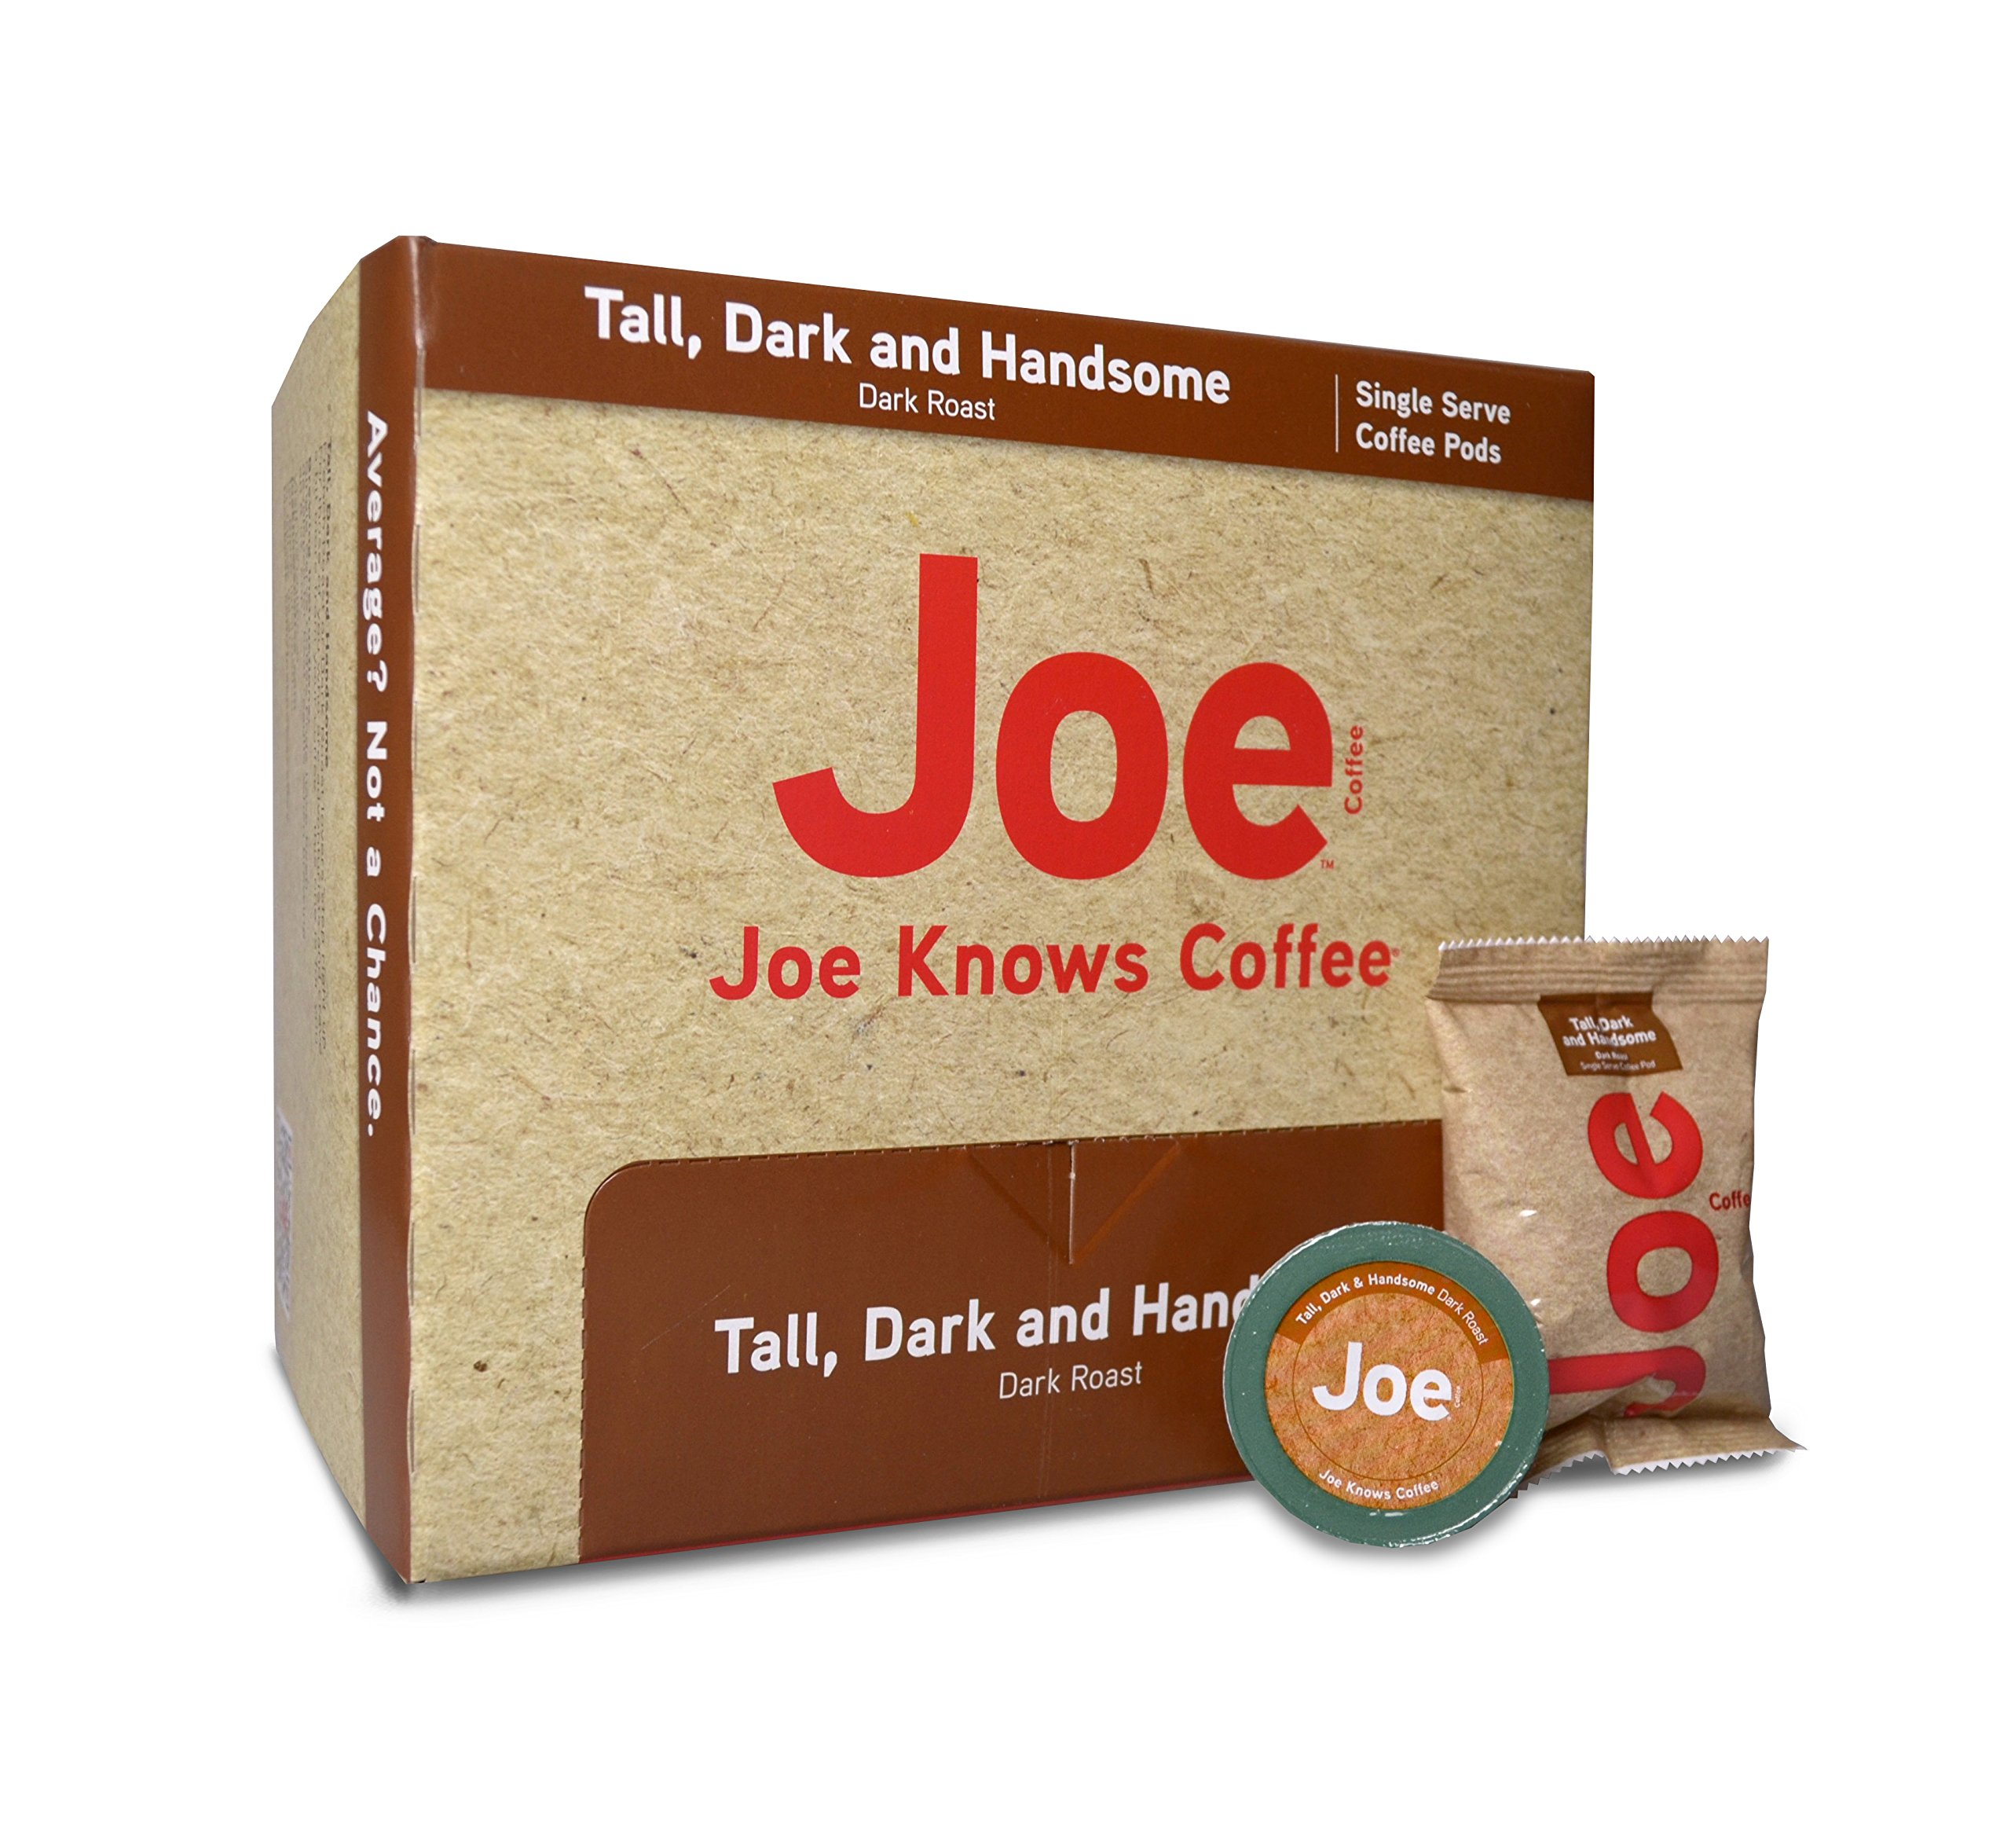 Joe Knows Coffee, Tall Dark and Handsome, Single Serve Coffee Pods, 40 count, Rich, Bold Roast, Compatible with Keurig 2.0 brewers by Joe Knows Coffee (Image #1)